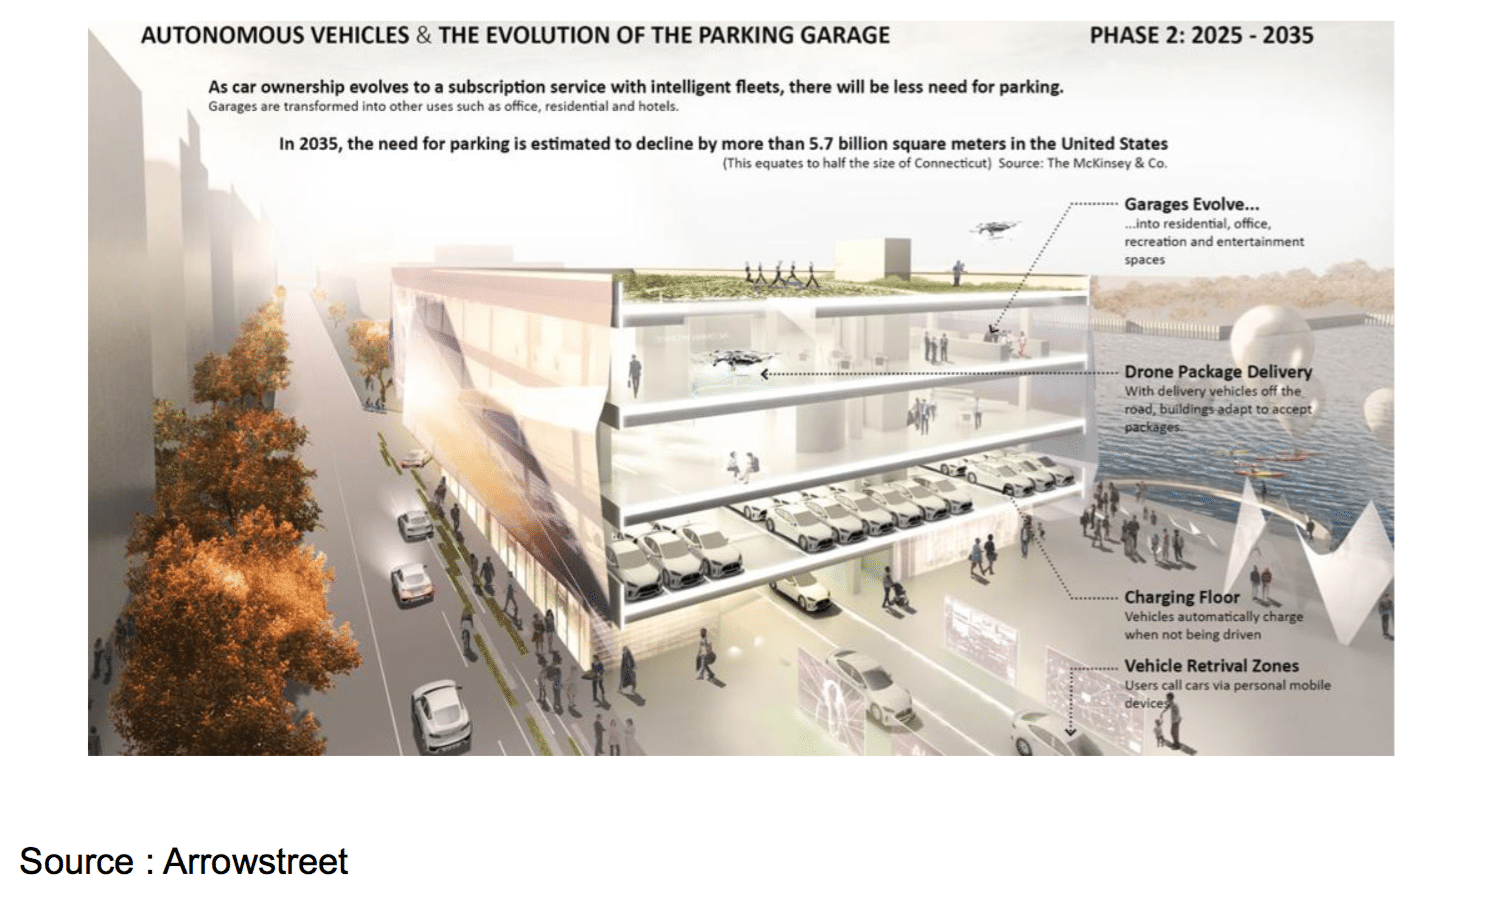 parking véhicules autonomes